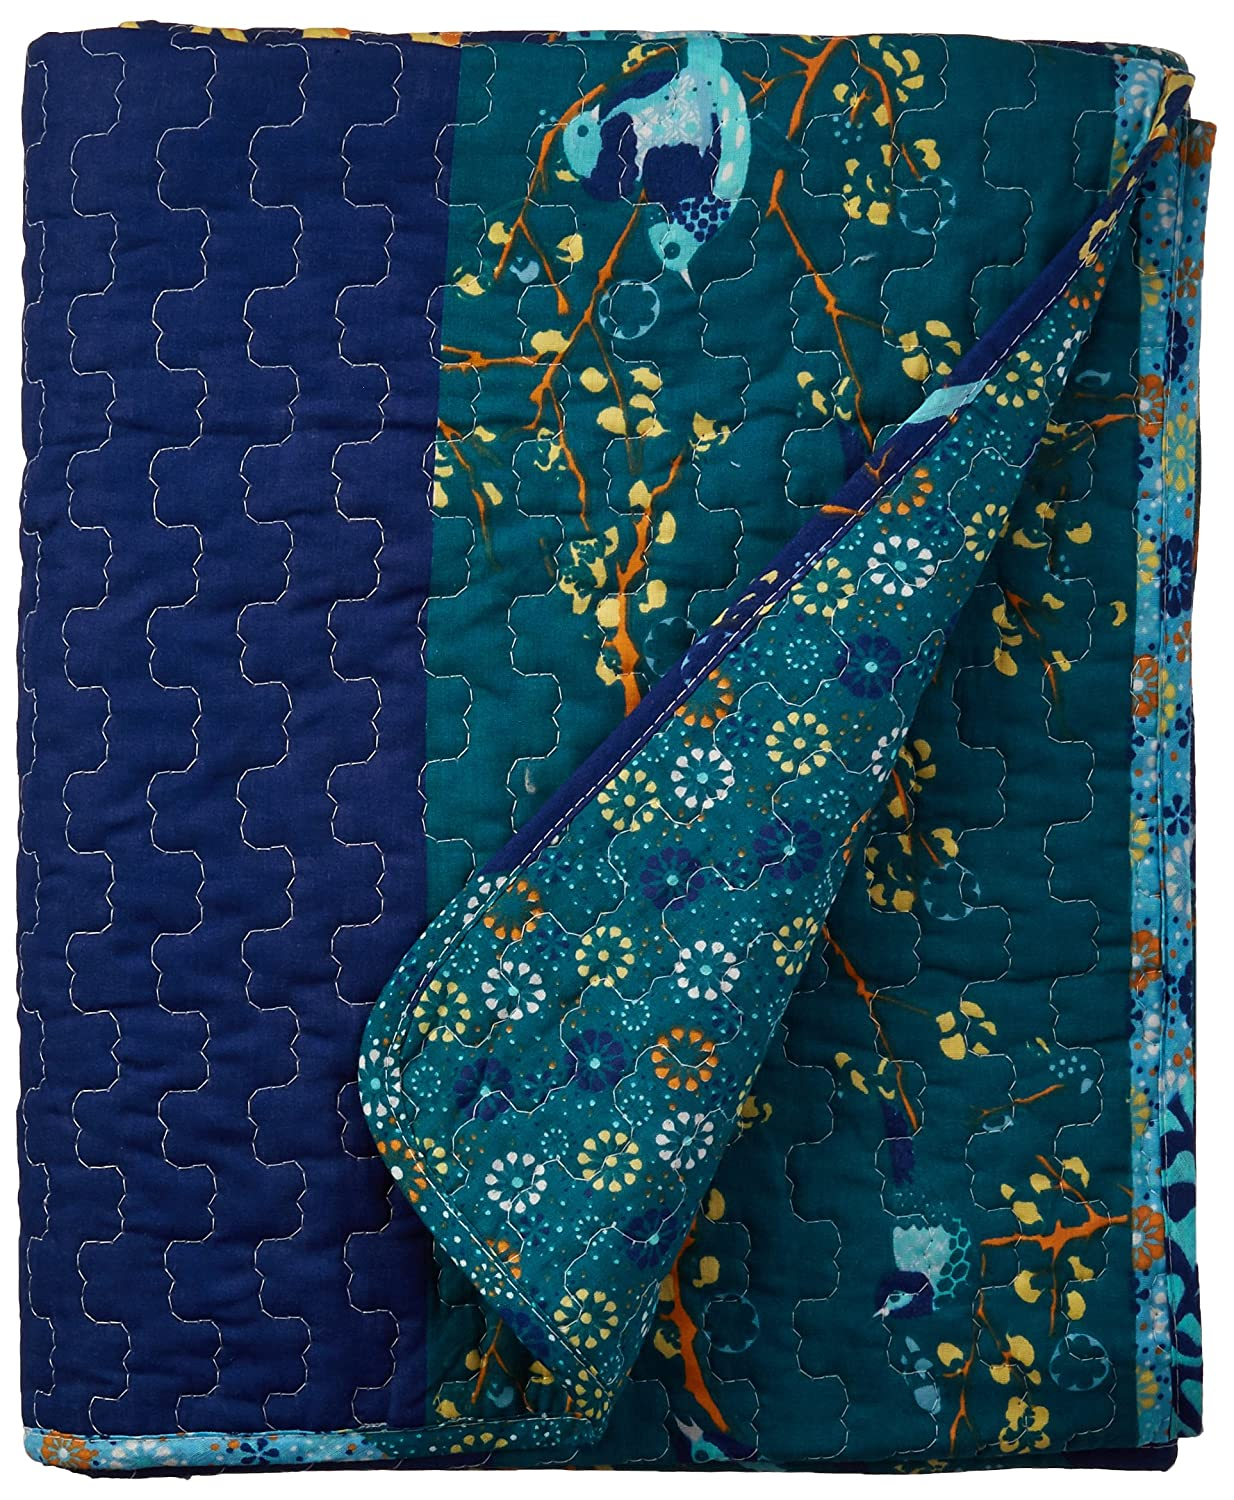 Lush Decor Royal Empire Throw, 60 by 50-Inch, Peacock